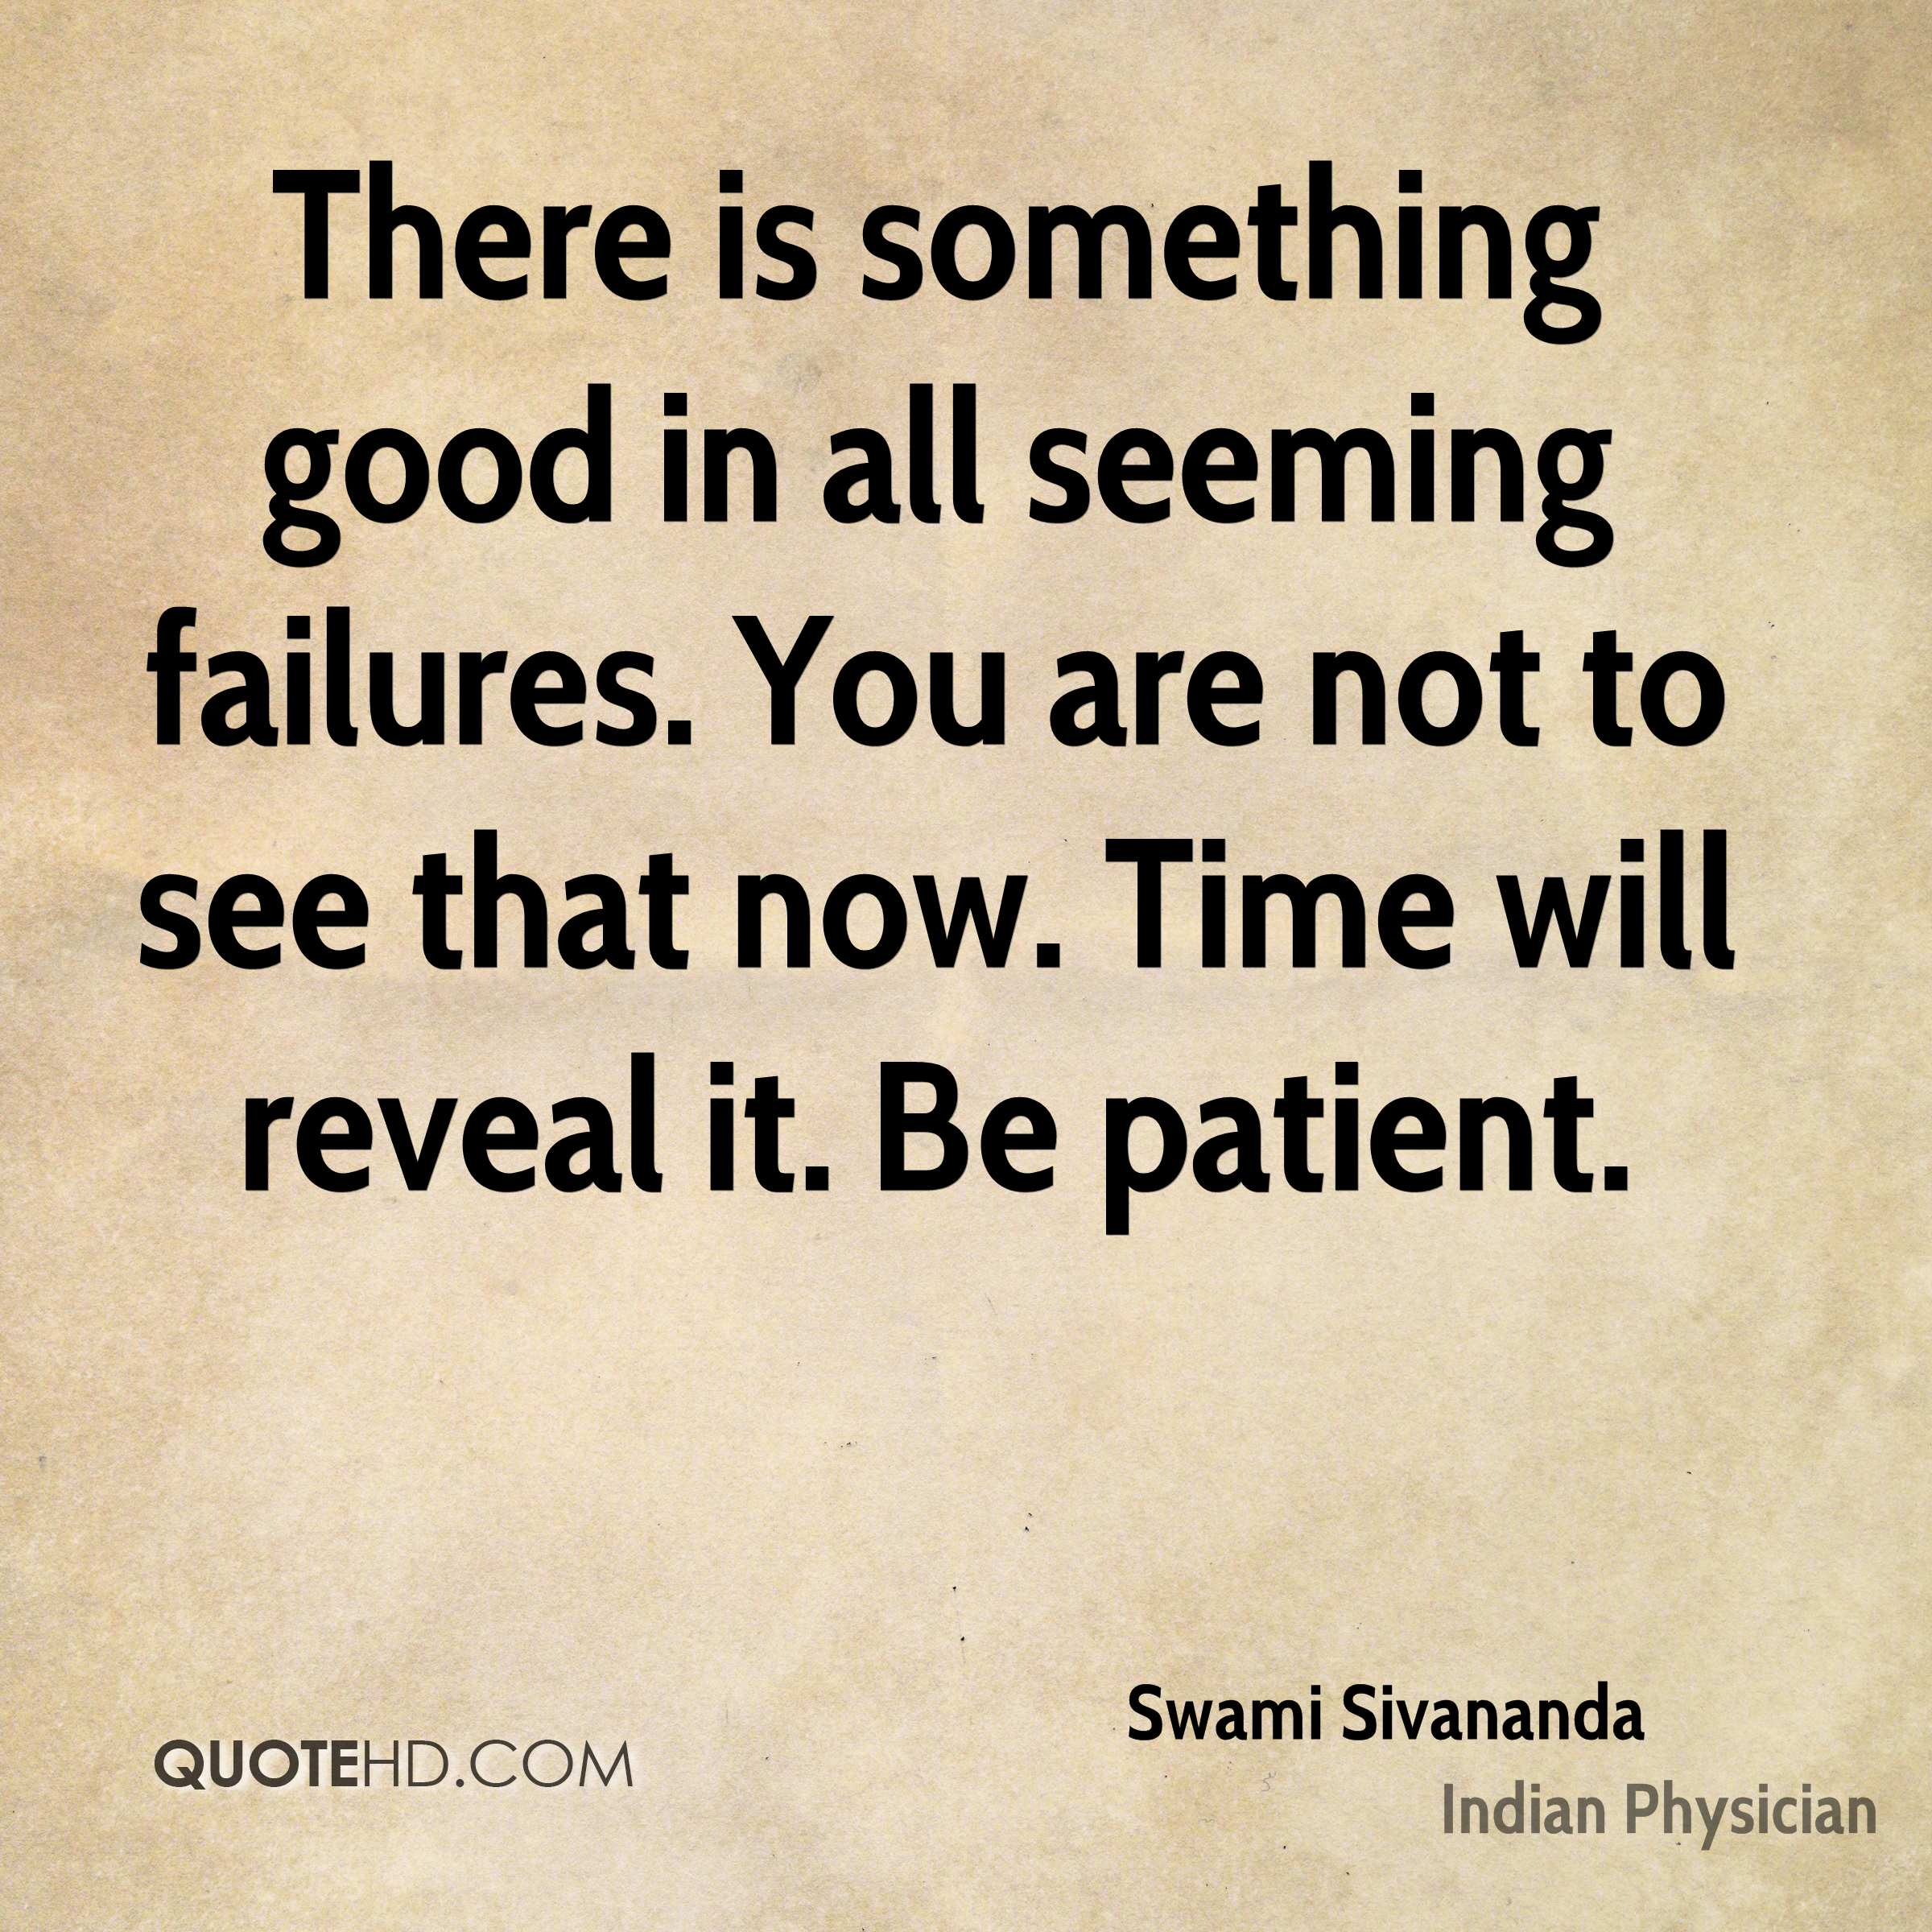 There is something good in all seeming failures. You are not to see that now. Time will reveal it. Be patient.